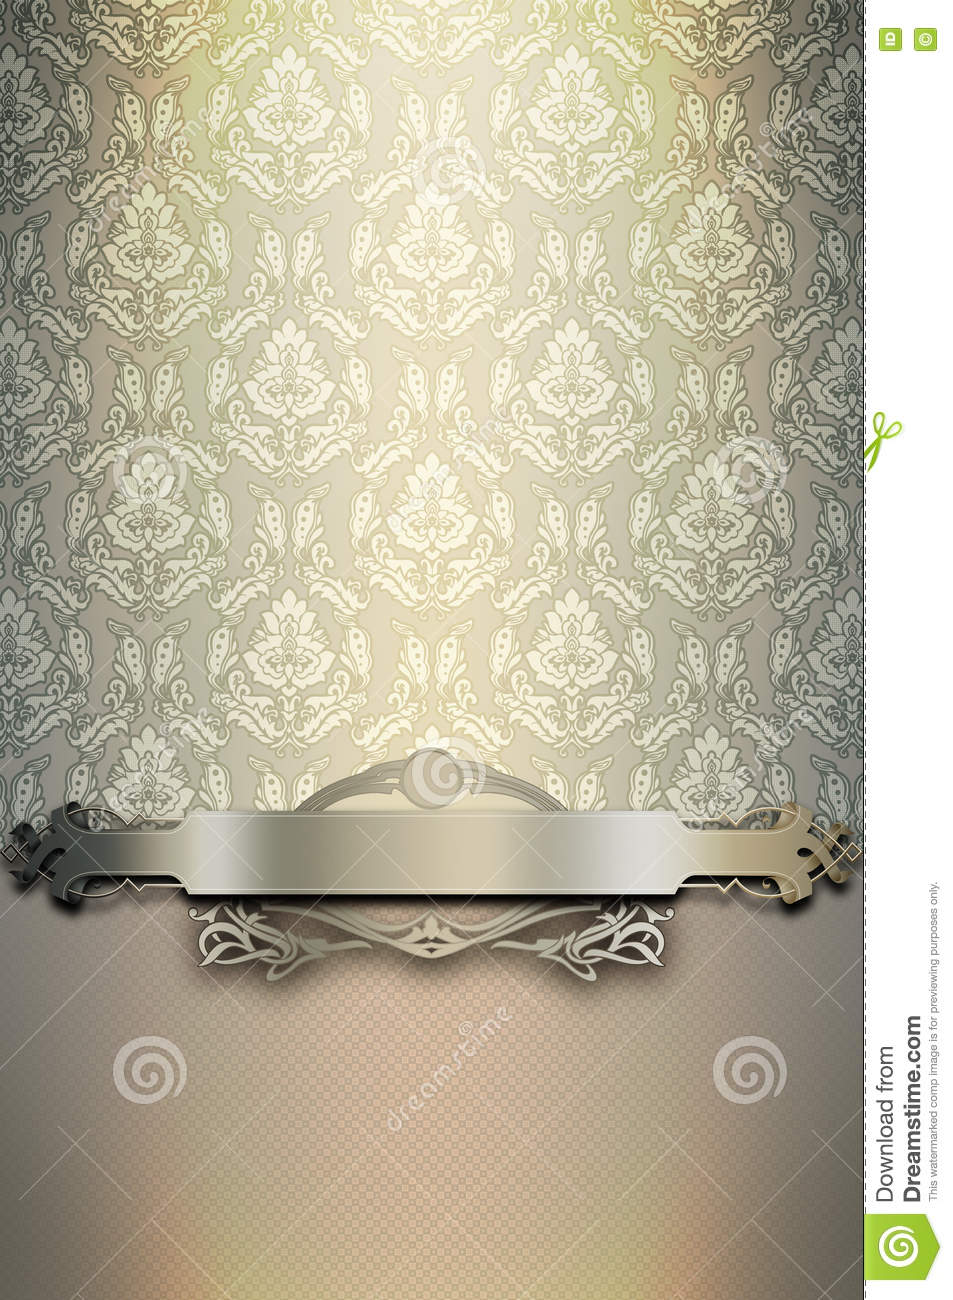 Book Cover Design Elegant : Decorative background with patterns and elegant border